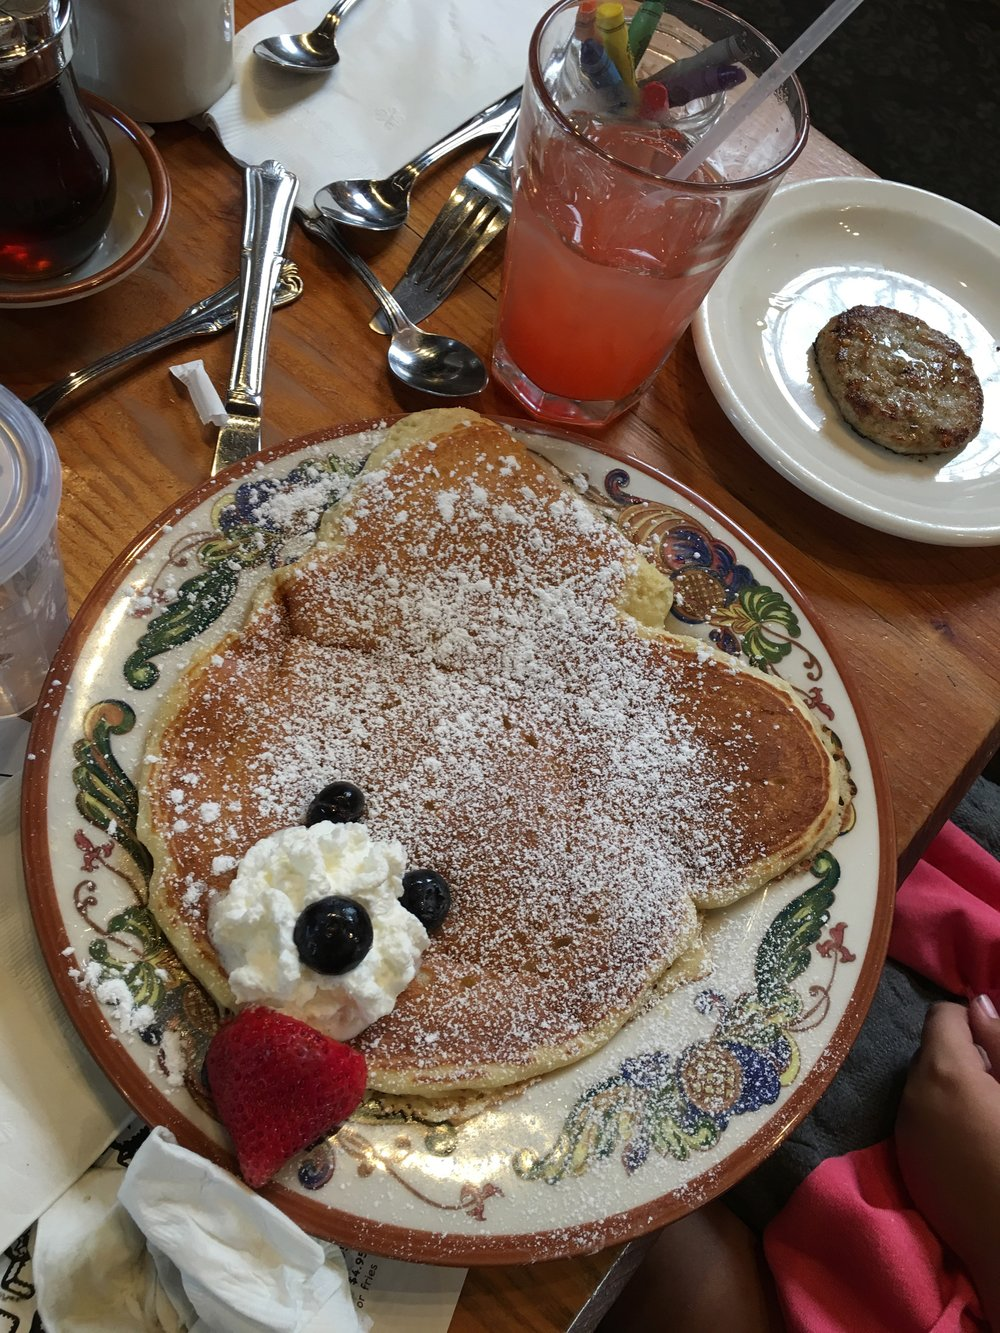 Bear pancakes at The Maple Counter Cafe.